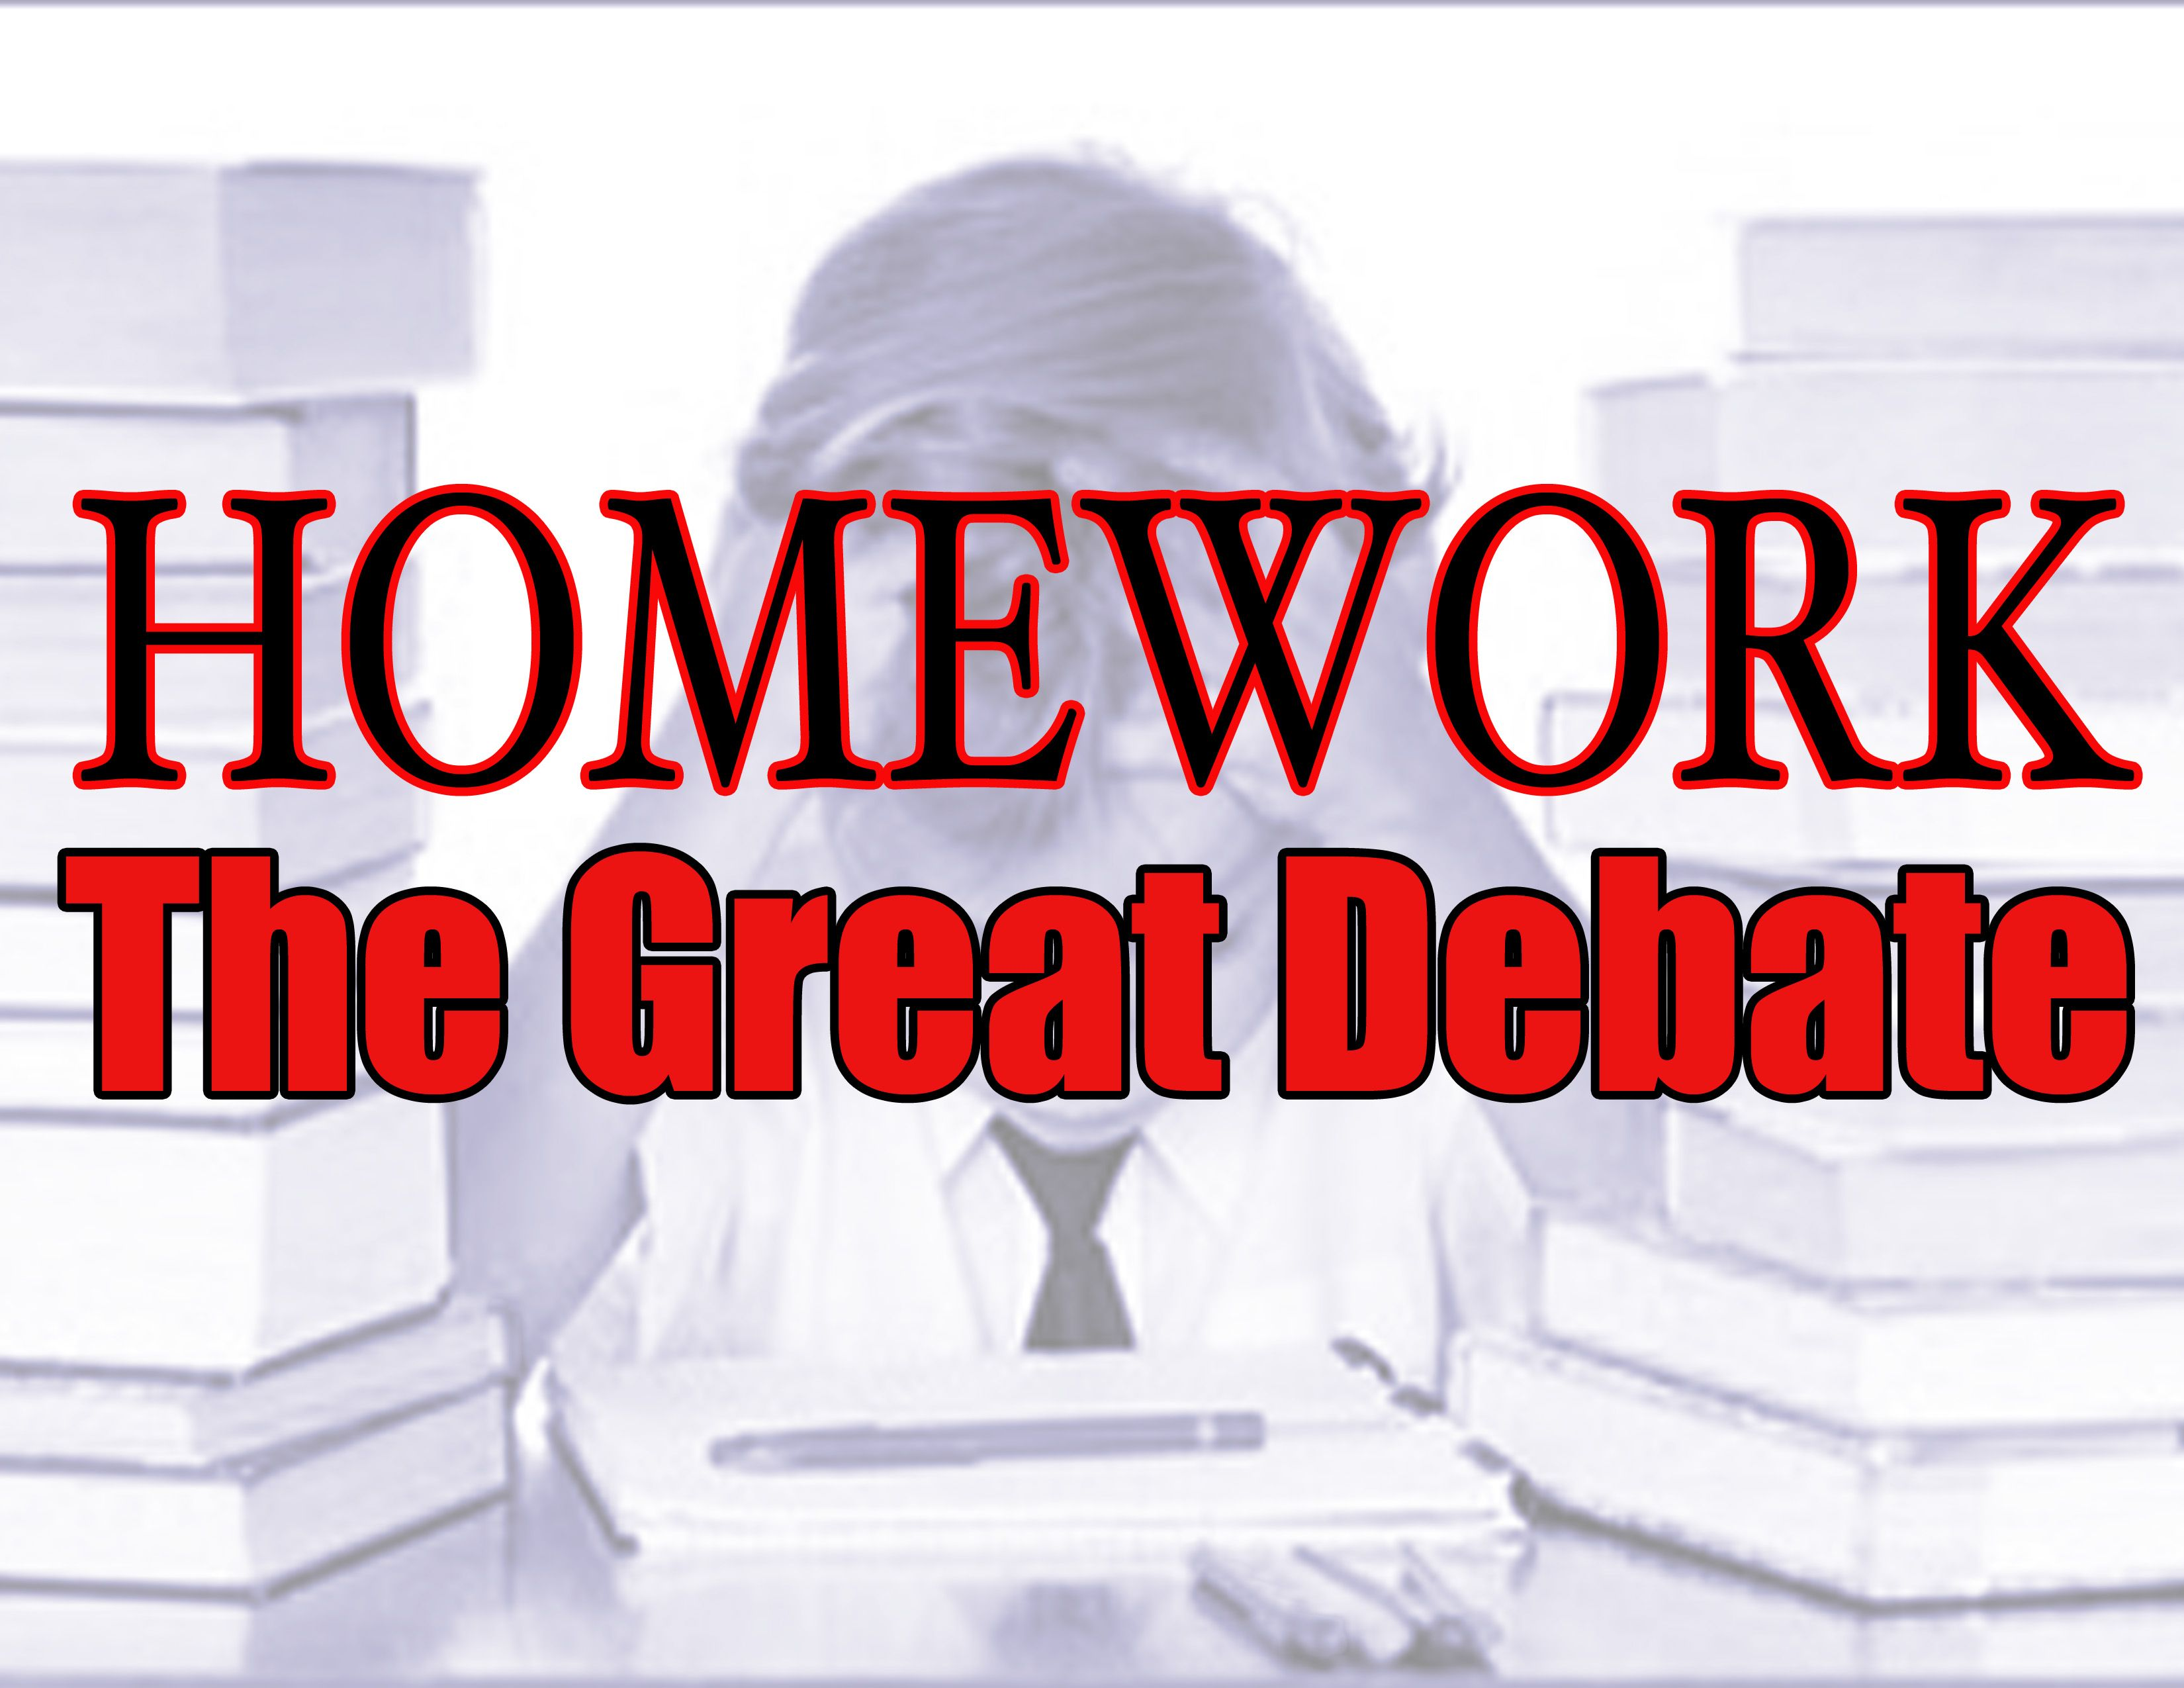 Homework Vs No Homework Is Wrong >> Homework Vs No Homework Is The Wrong Argument And The Wrong Debate